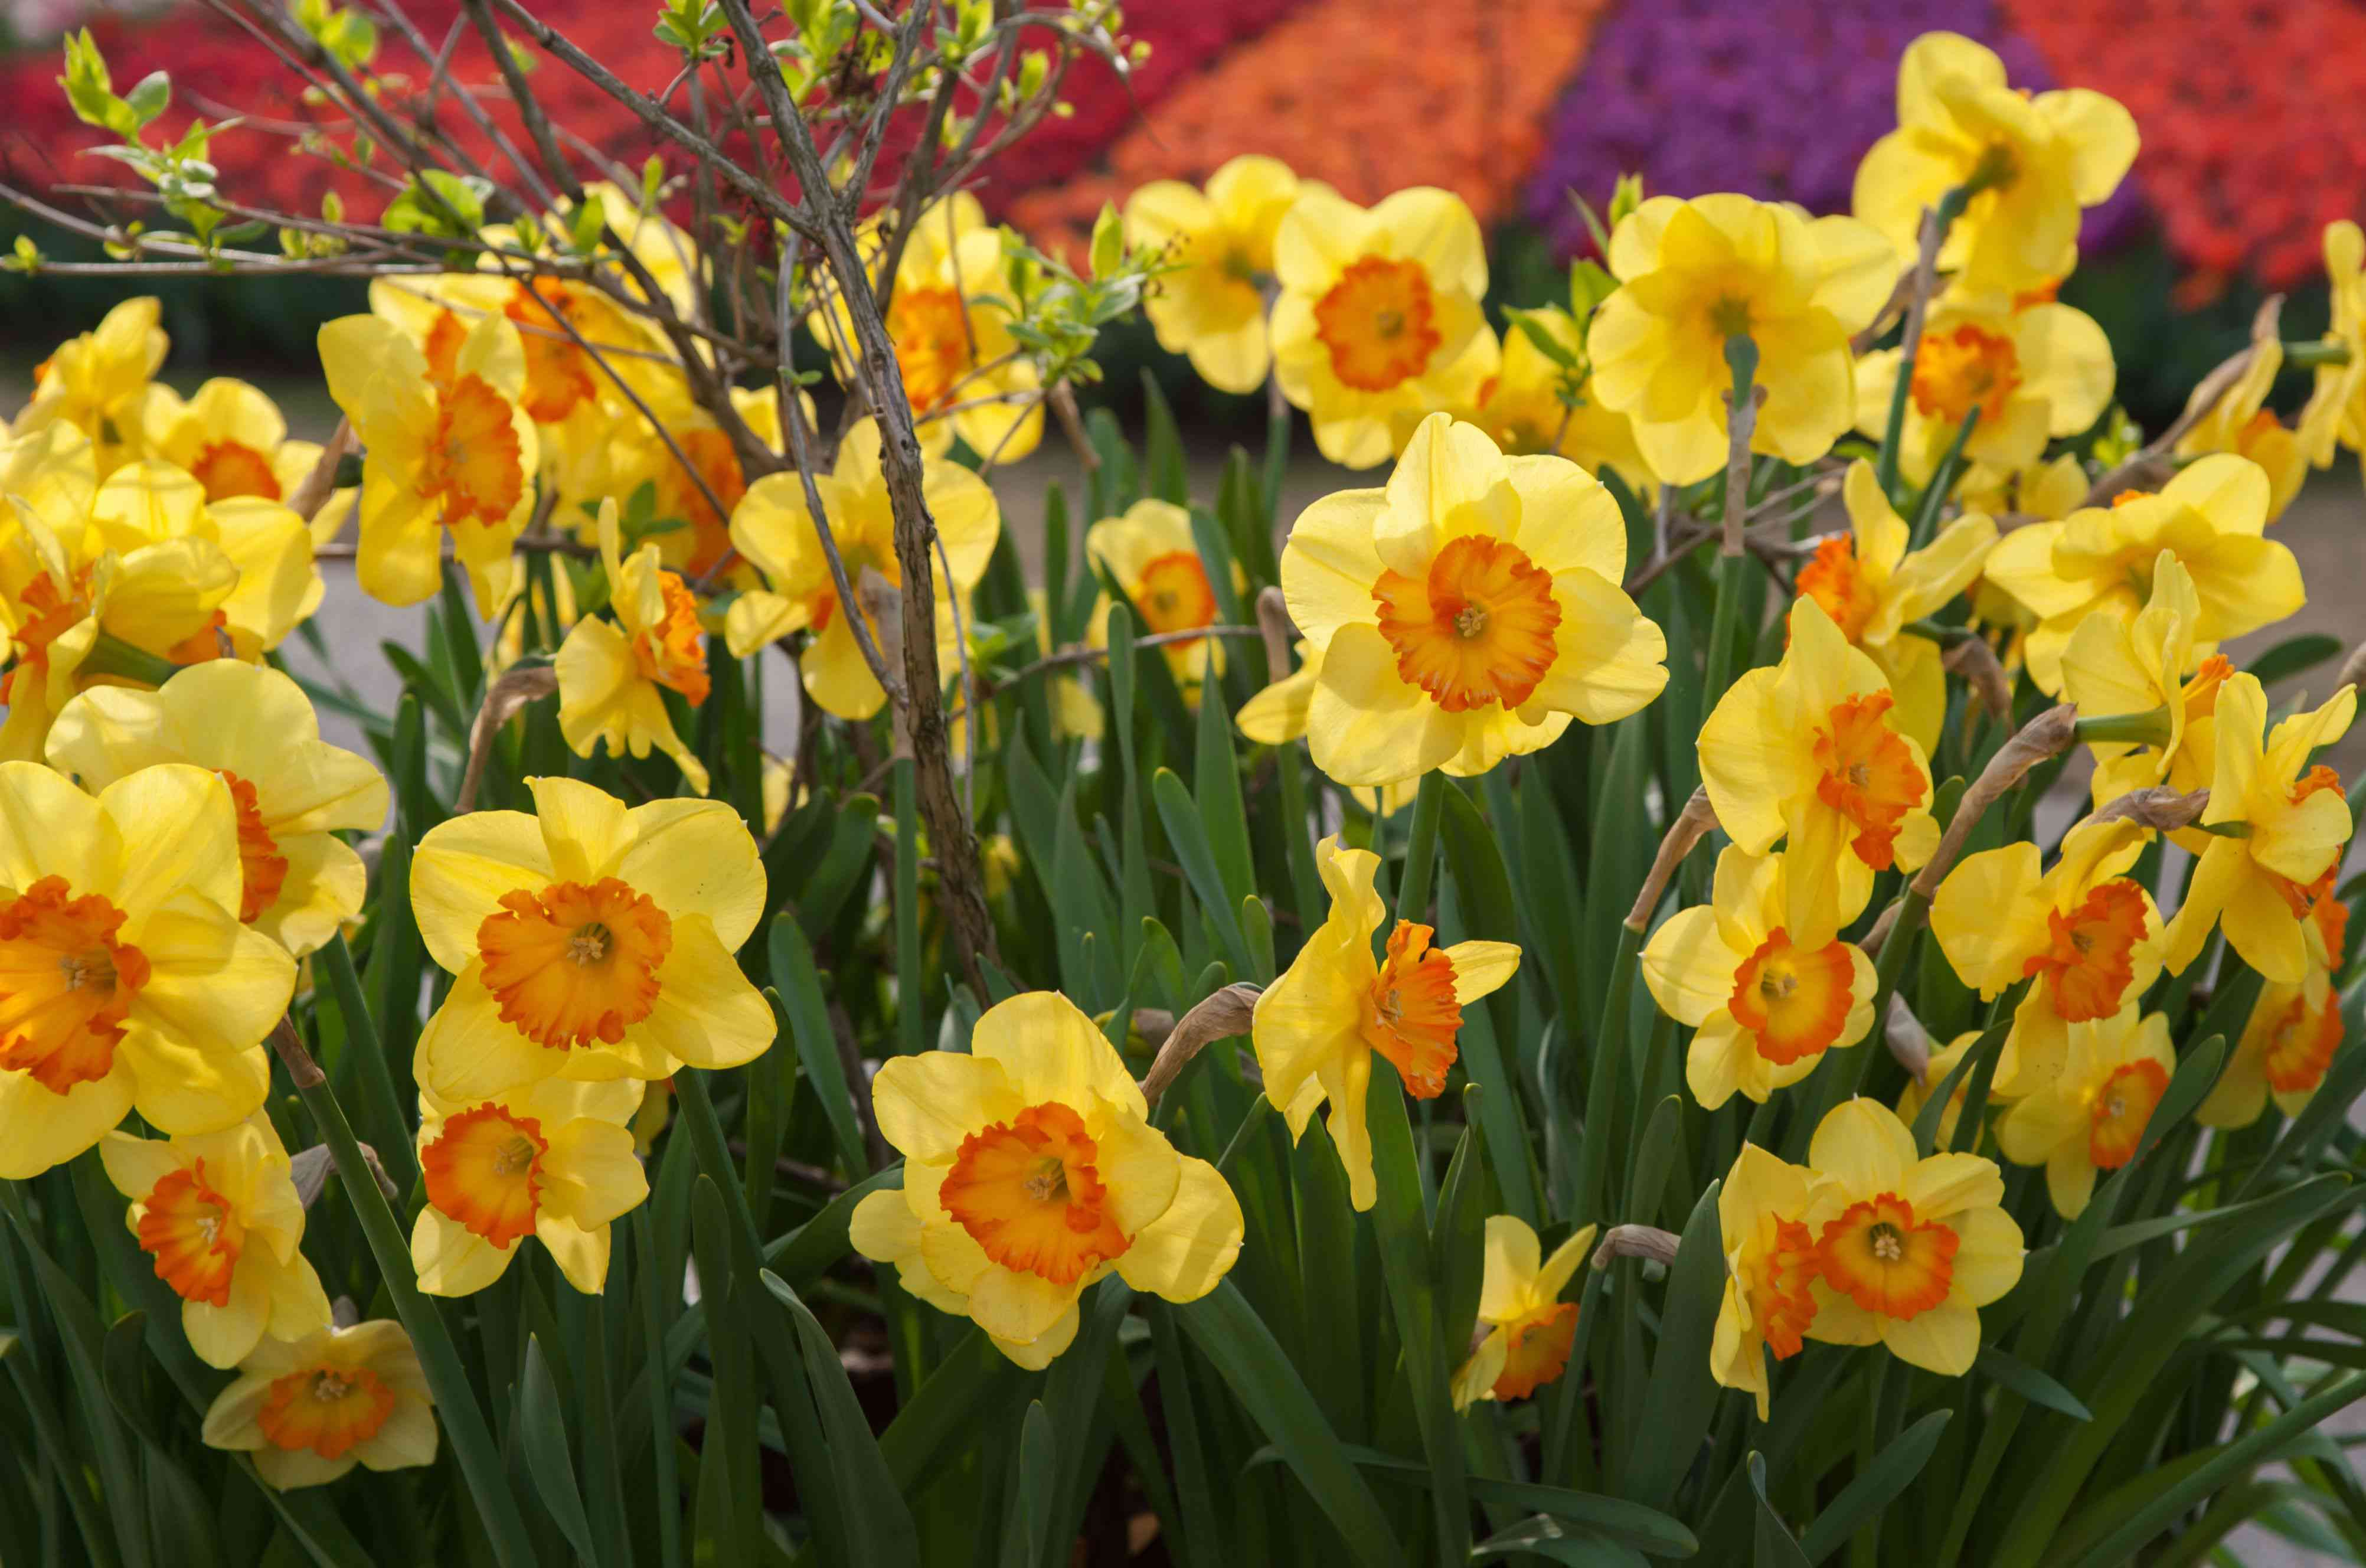 Daffodil flowers with yellow and orange colored petals in garden